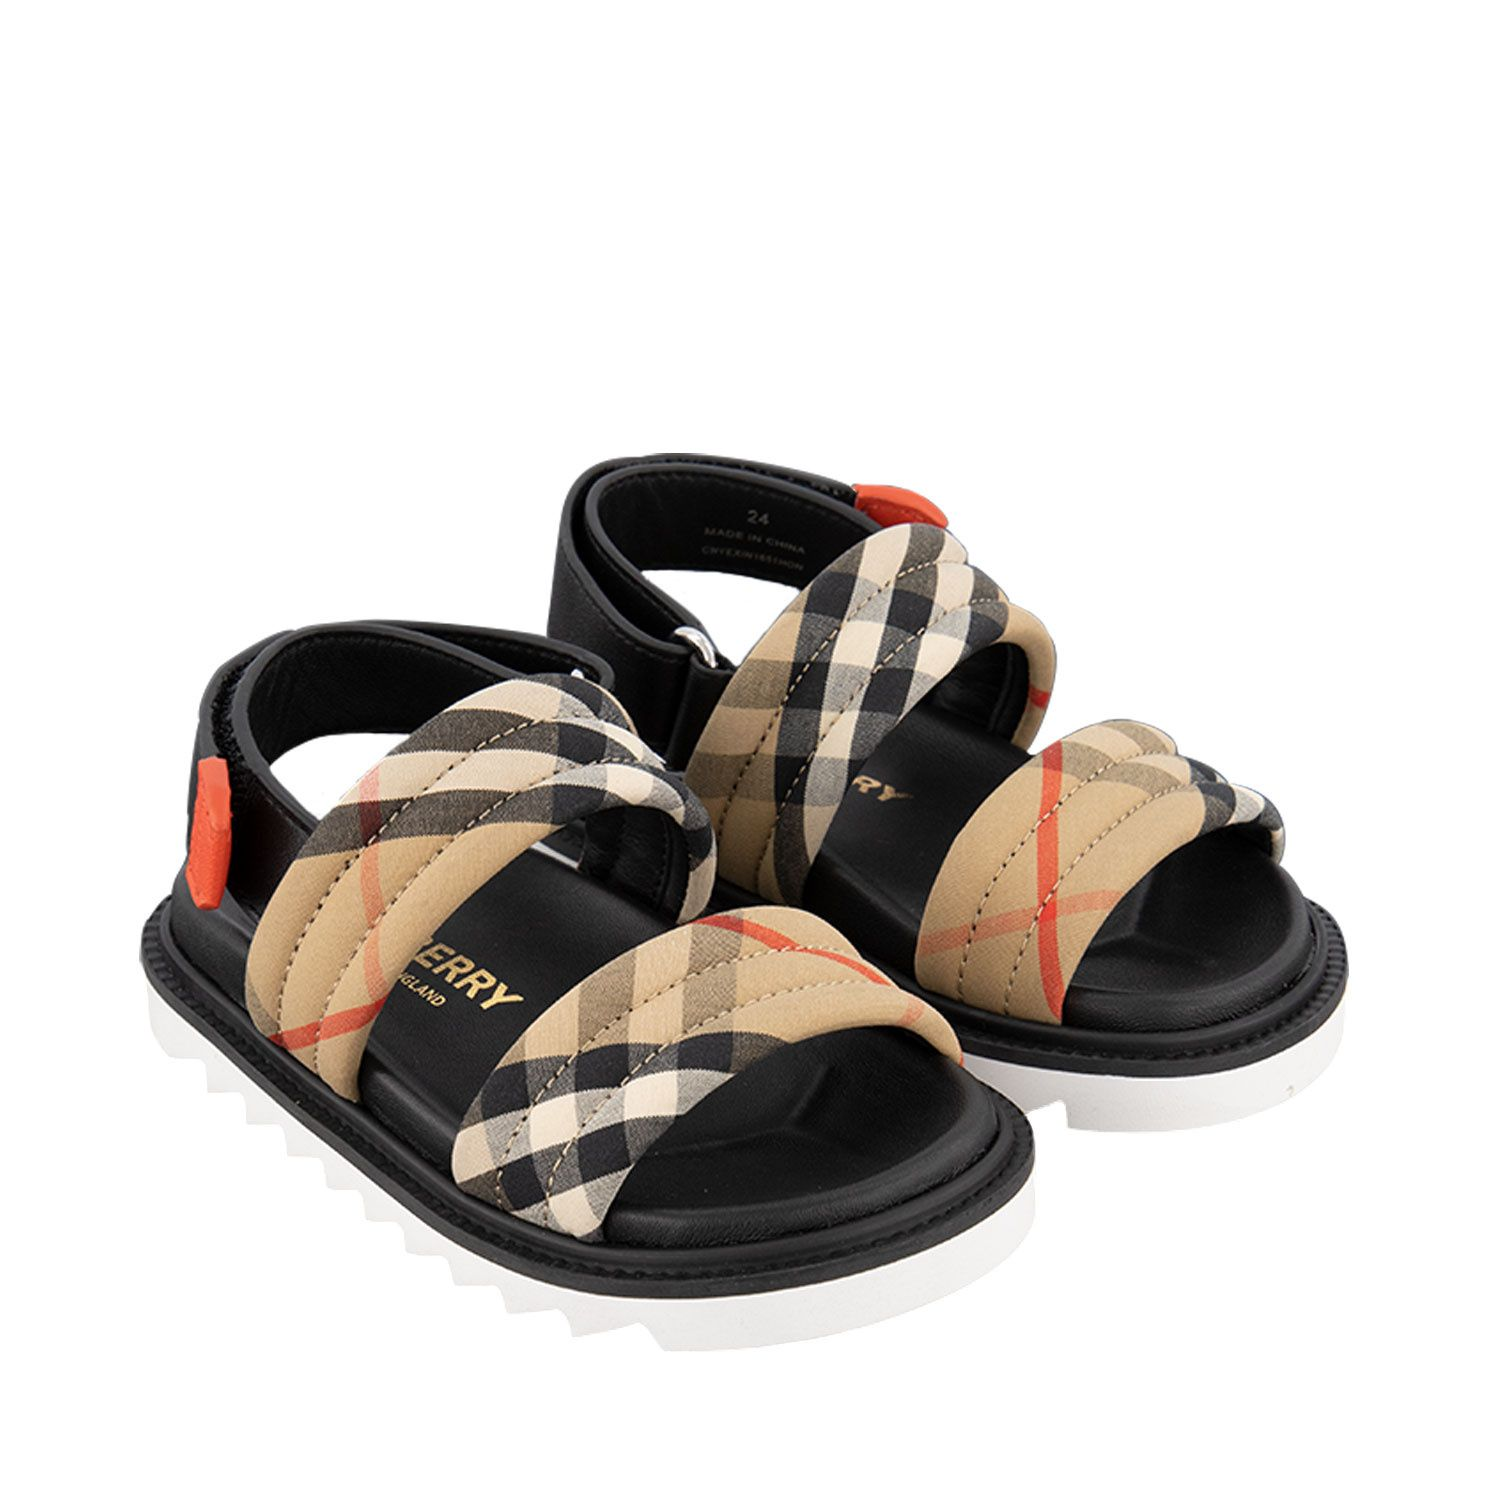 Picture of Burberry 8037144 kids sandals beige